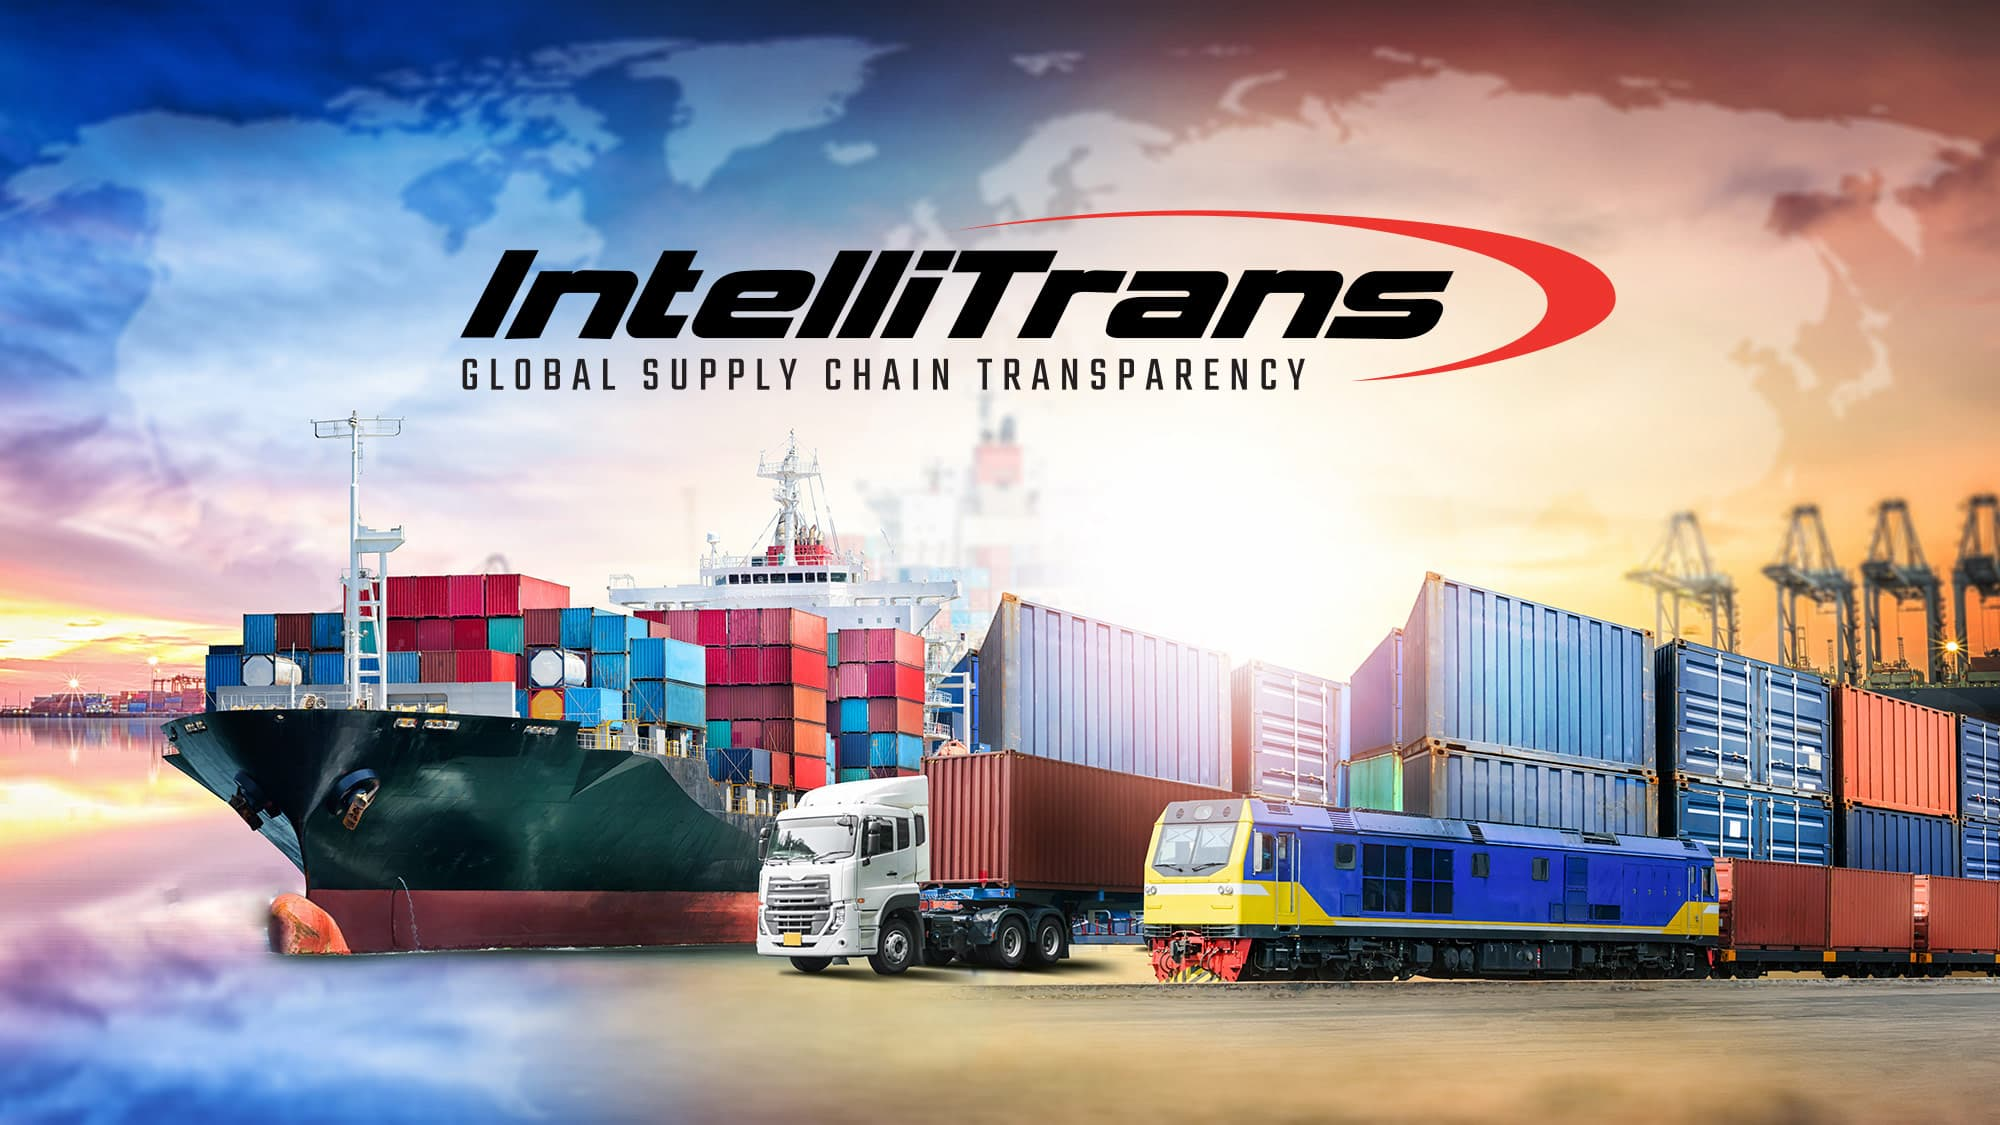 5 Ways Global Supply Chain Transparency Improves Customer Service